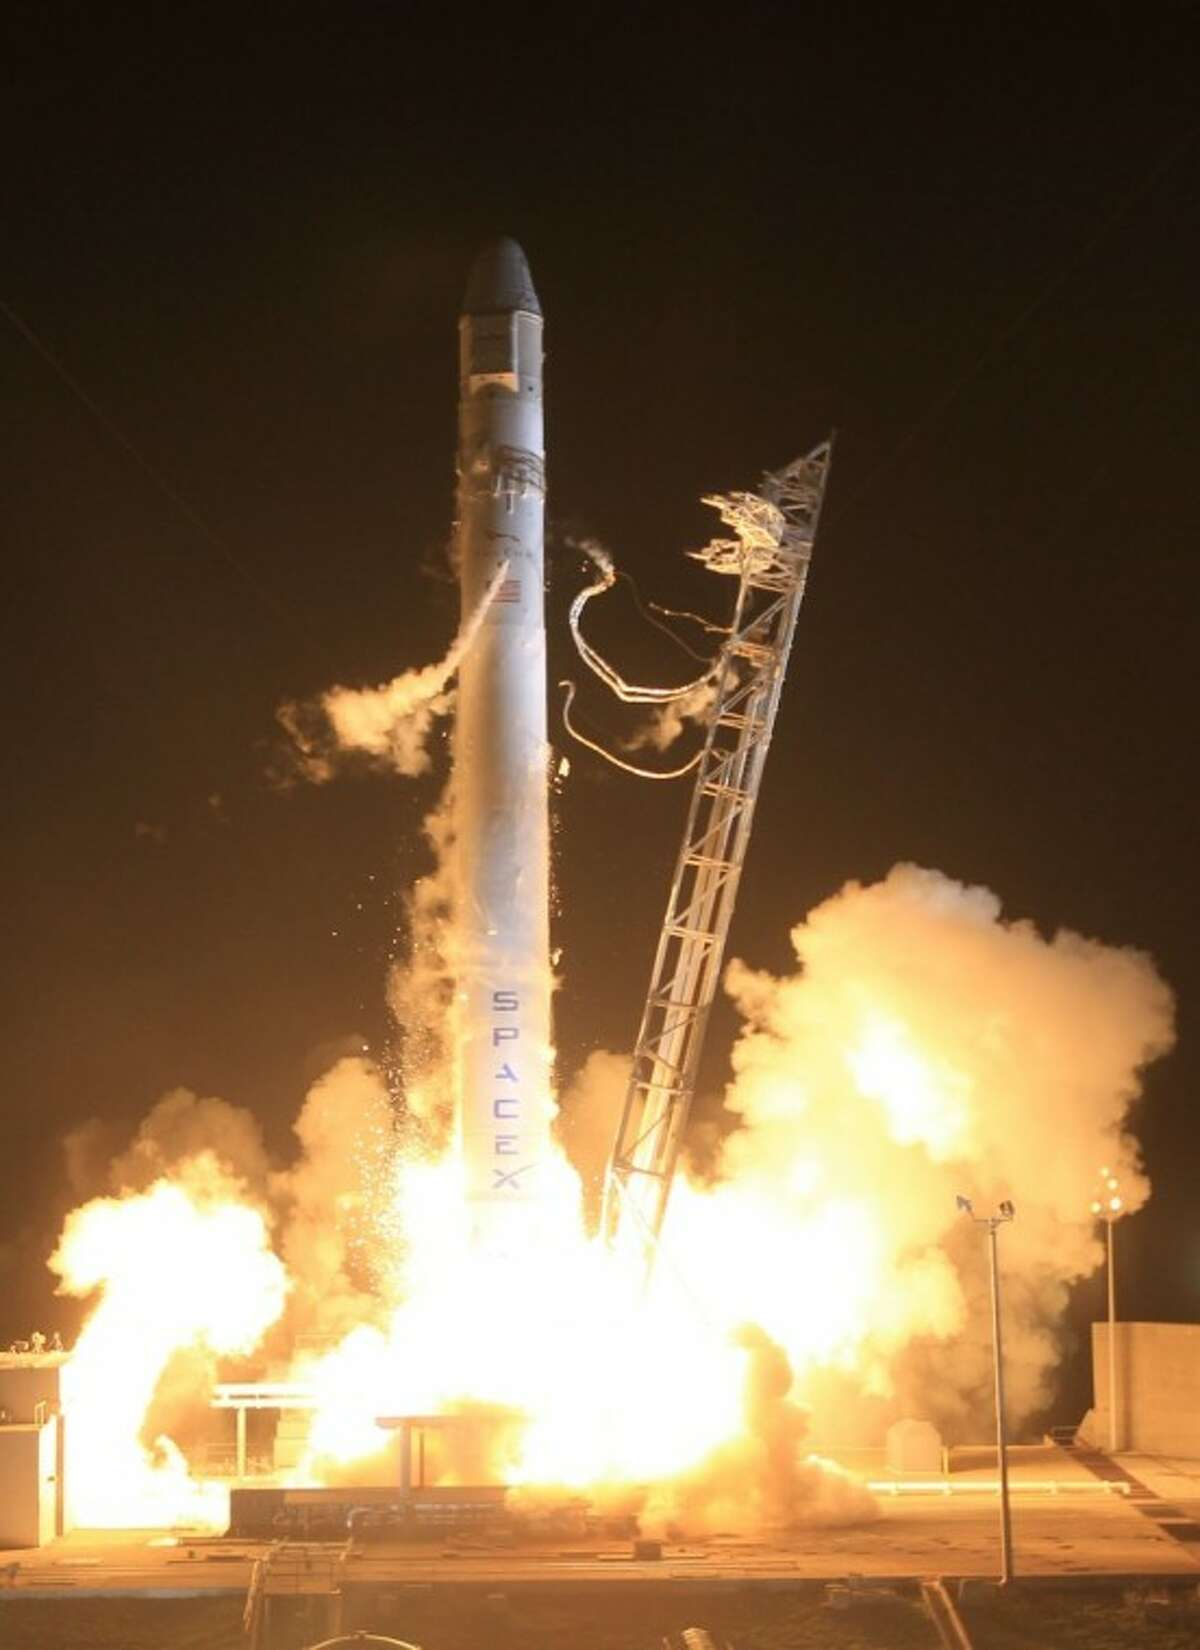 The SpaceX's Dragon capsule rides the Falcon 9 rocket into space in historic launch from Cape Canaveral, which has witnessed many historic liftoffs.